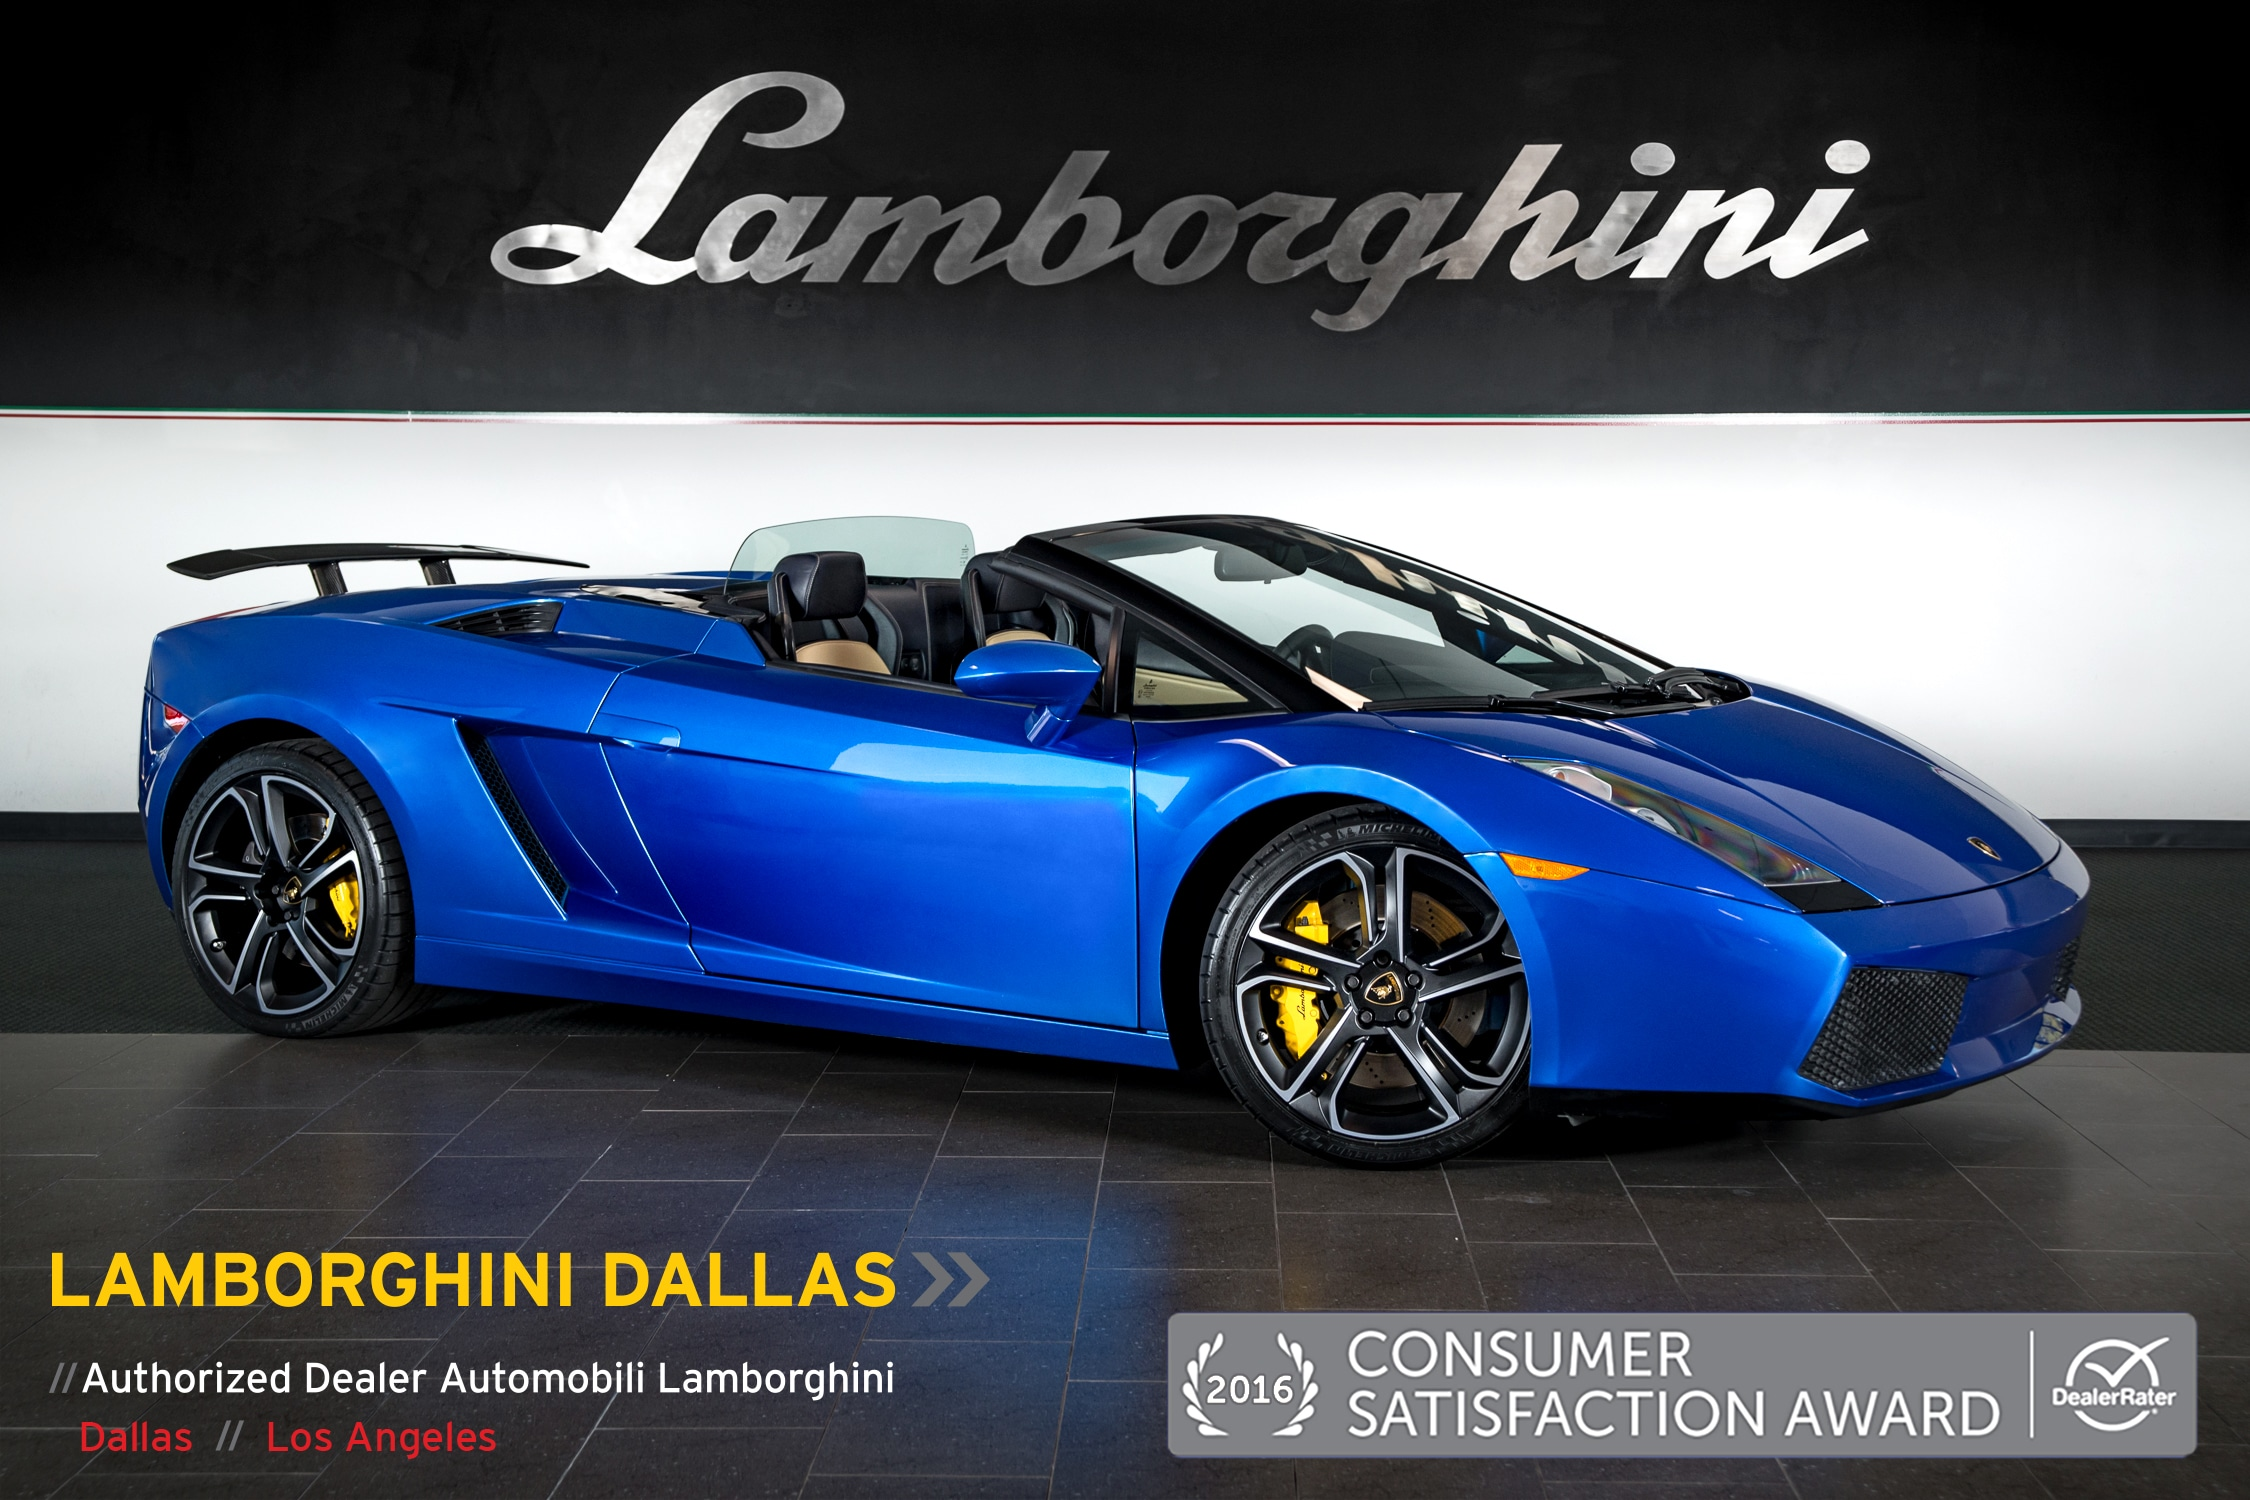 Pre-Owned 2007 Lamborghini Gallardo Spyder Dallas TX